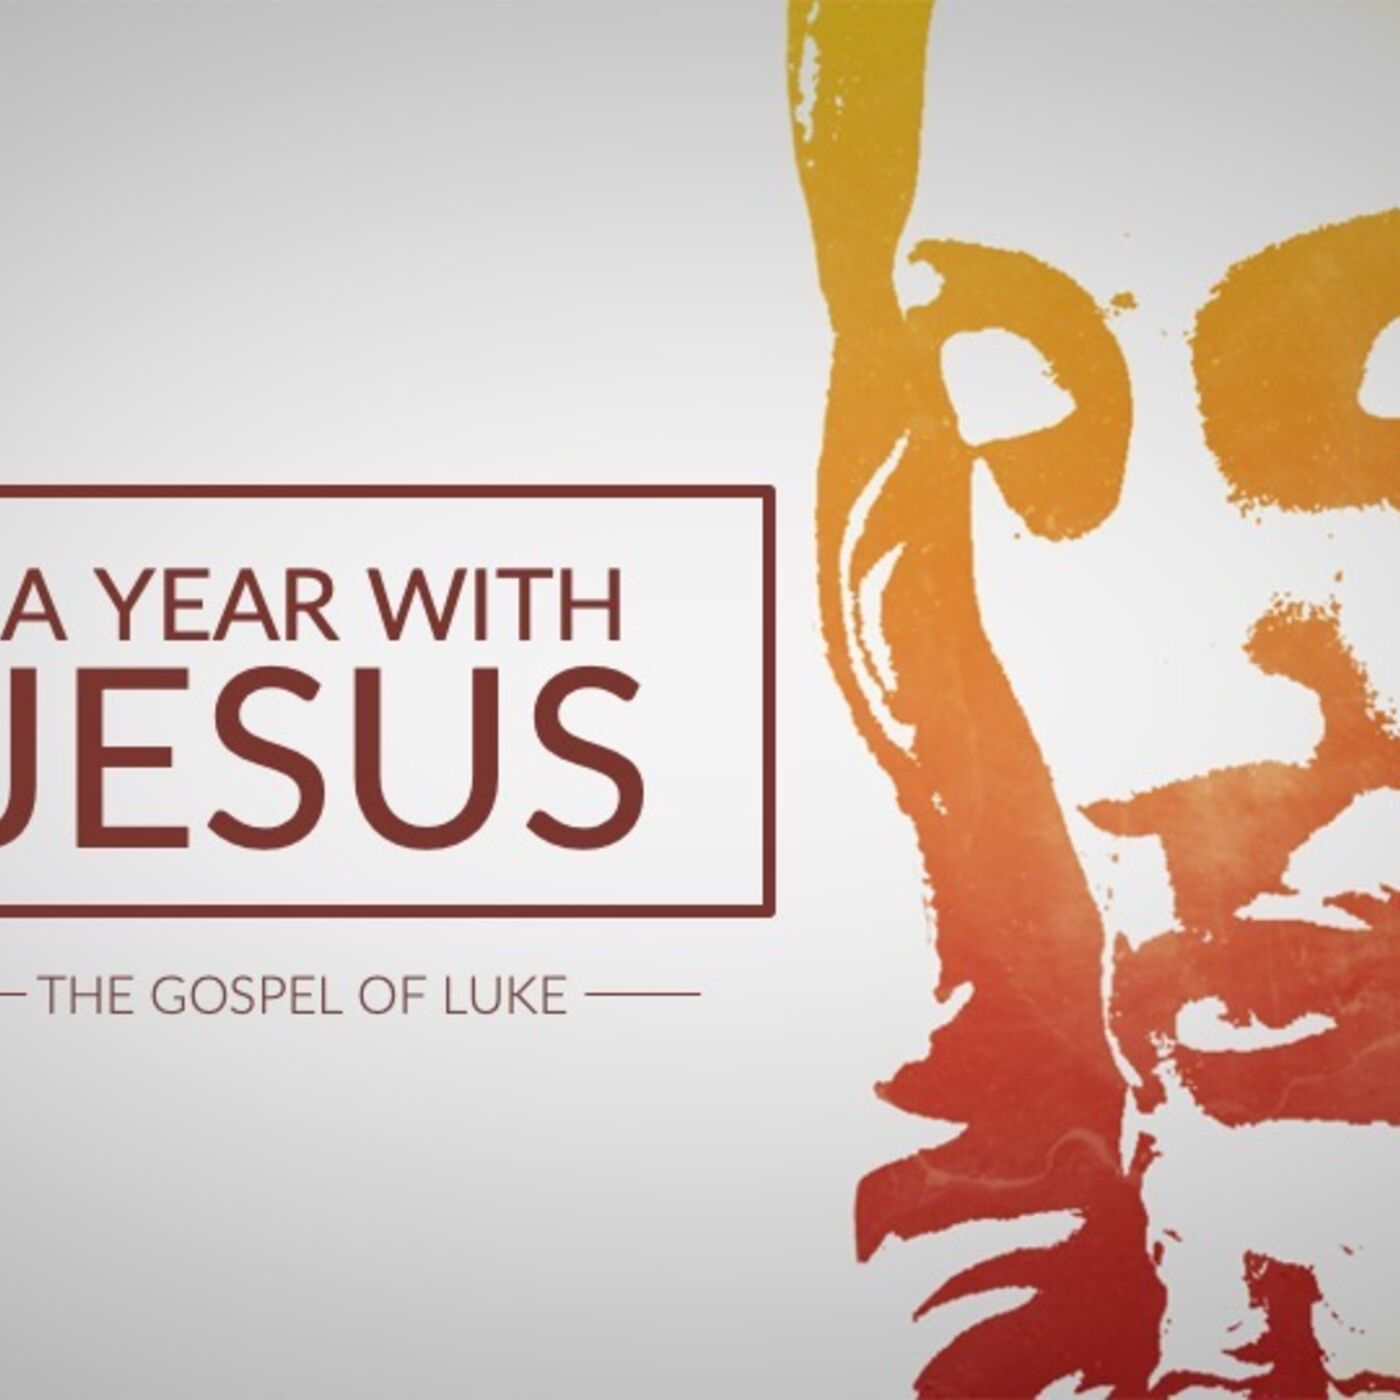 A Year With Jesus: A Meal With Jesus (Luke 14:1-24)